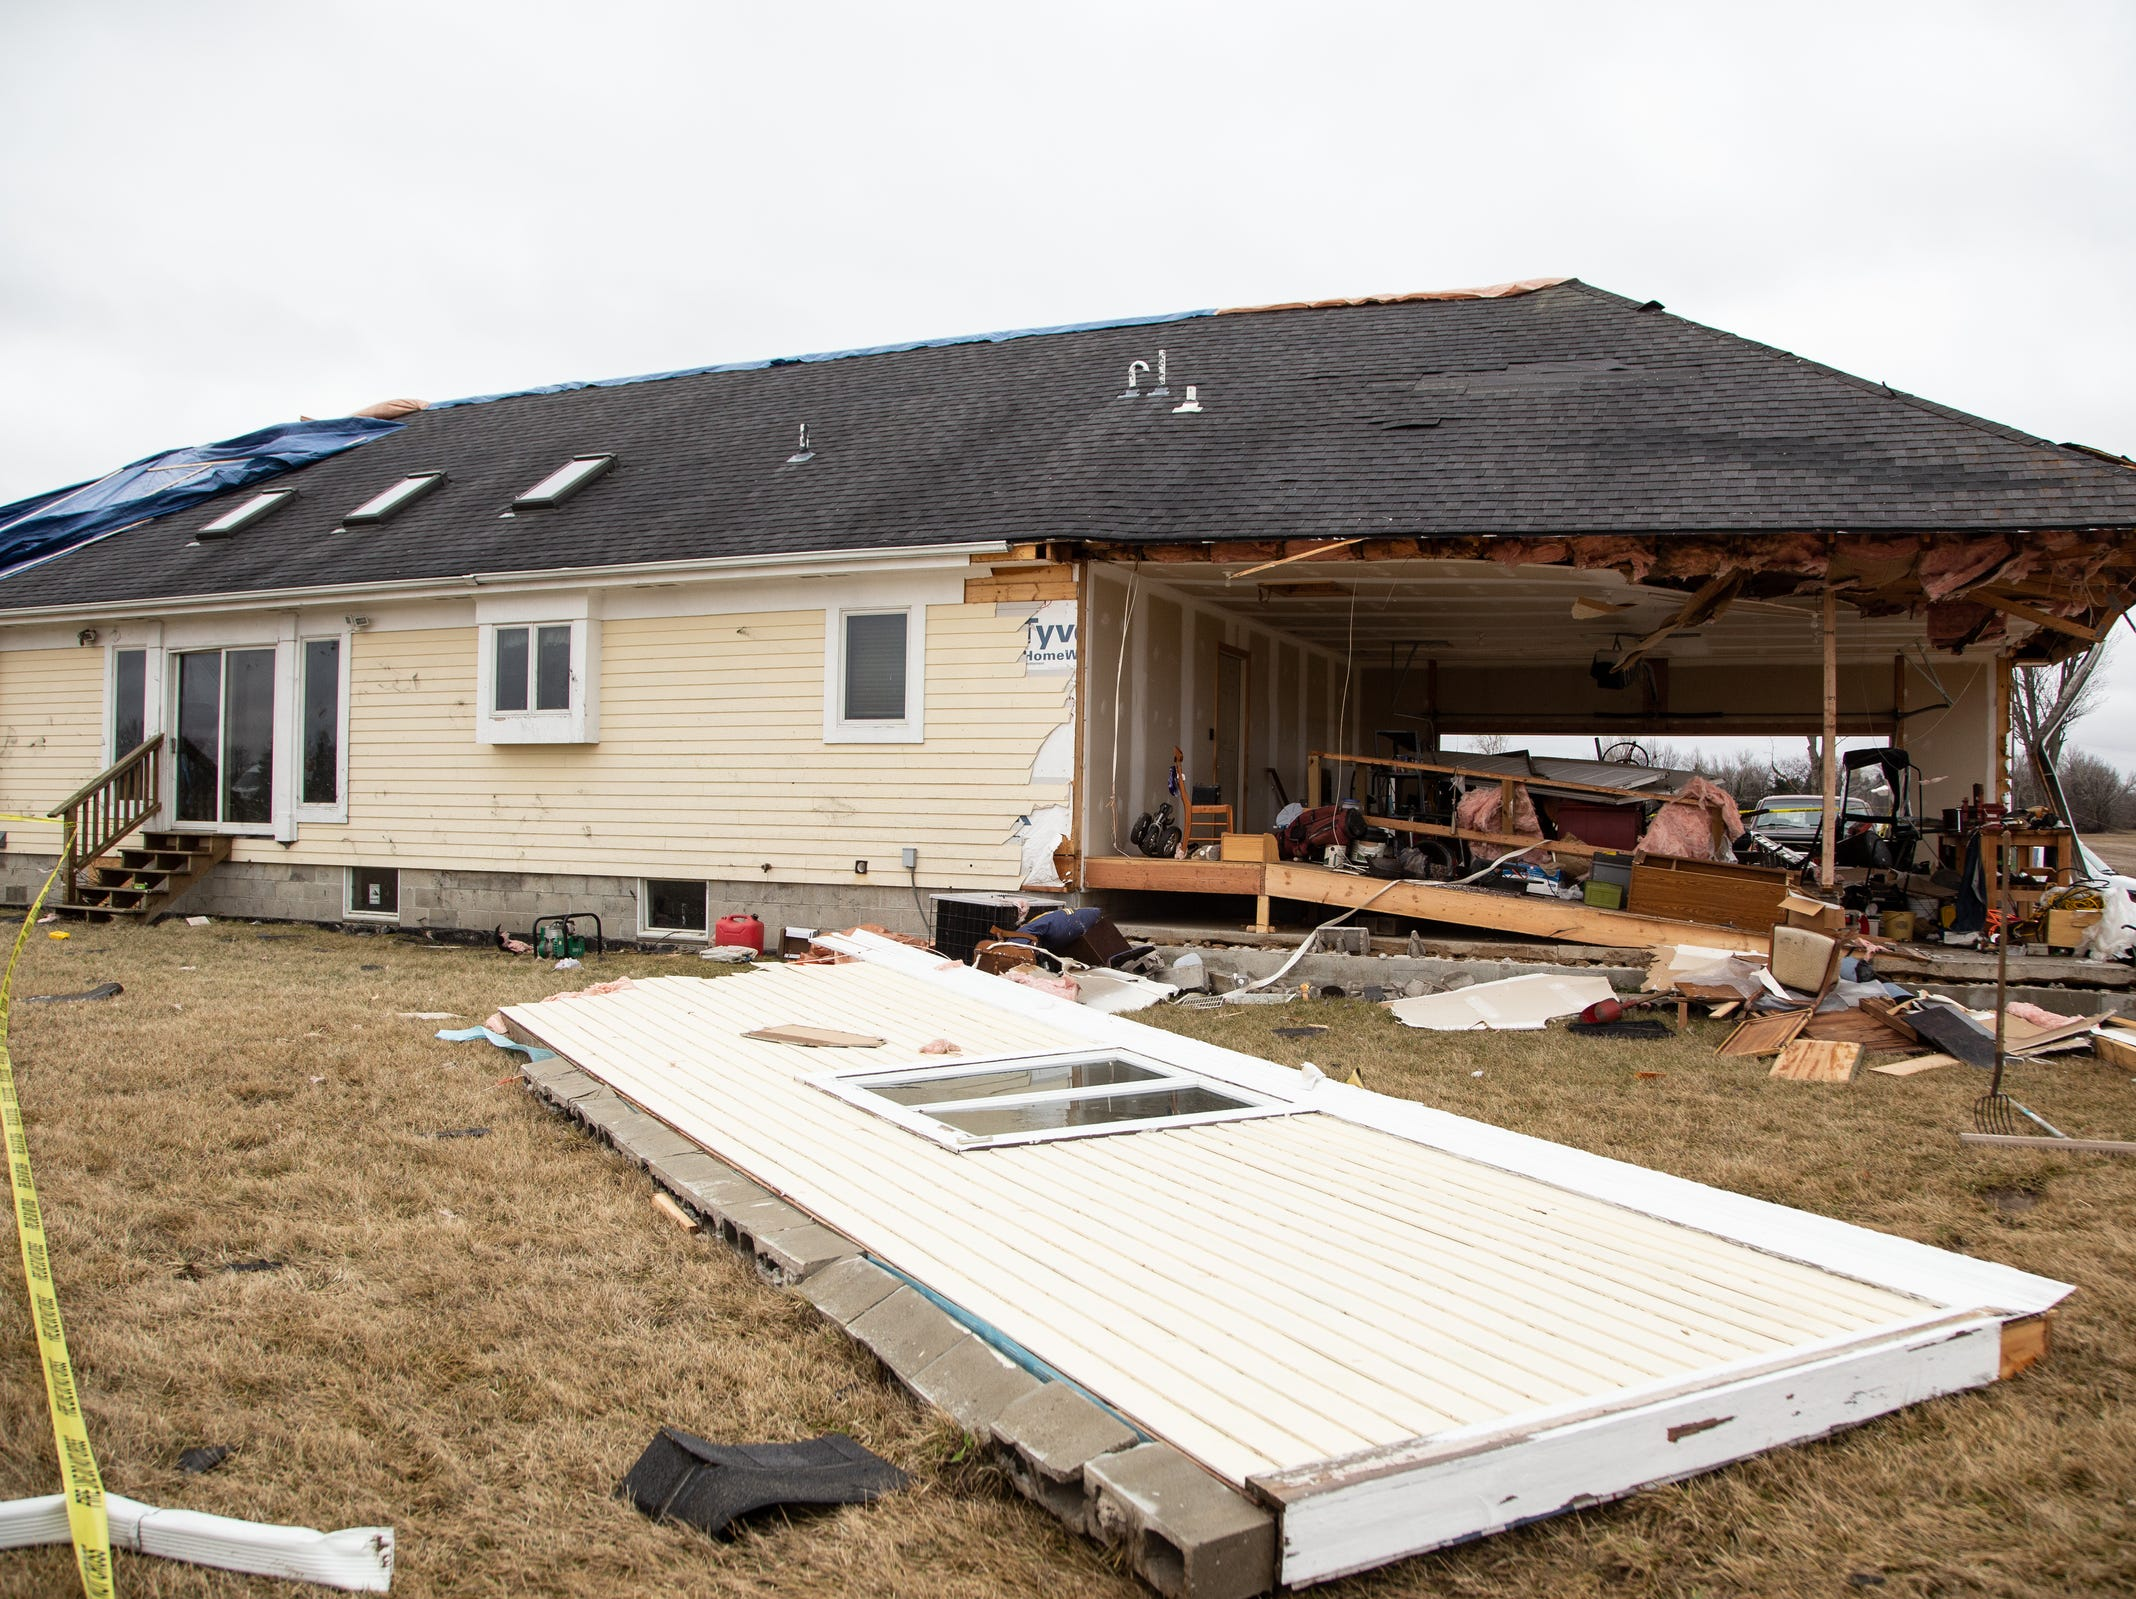 A damaged home in Vernon is seen on Friday, March 15, 2019 after a tornado came through Shiawassee County.